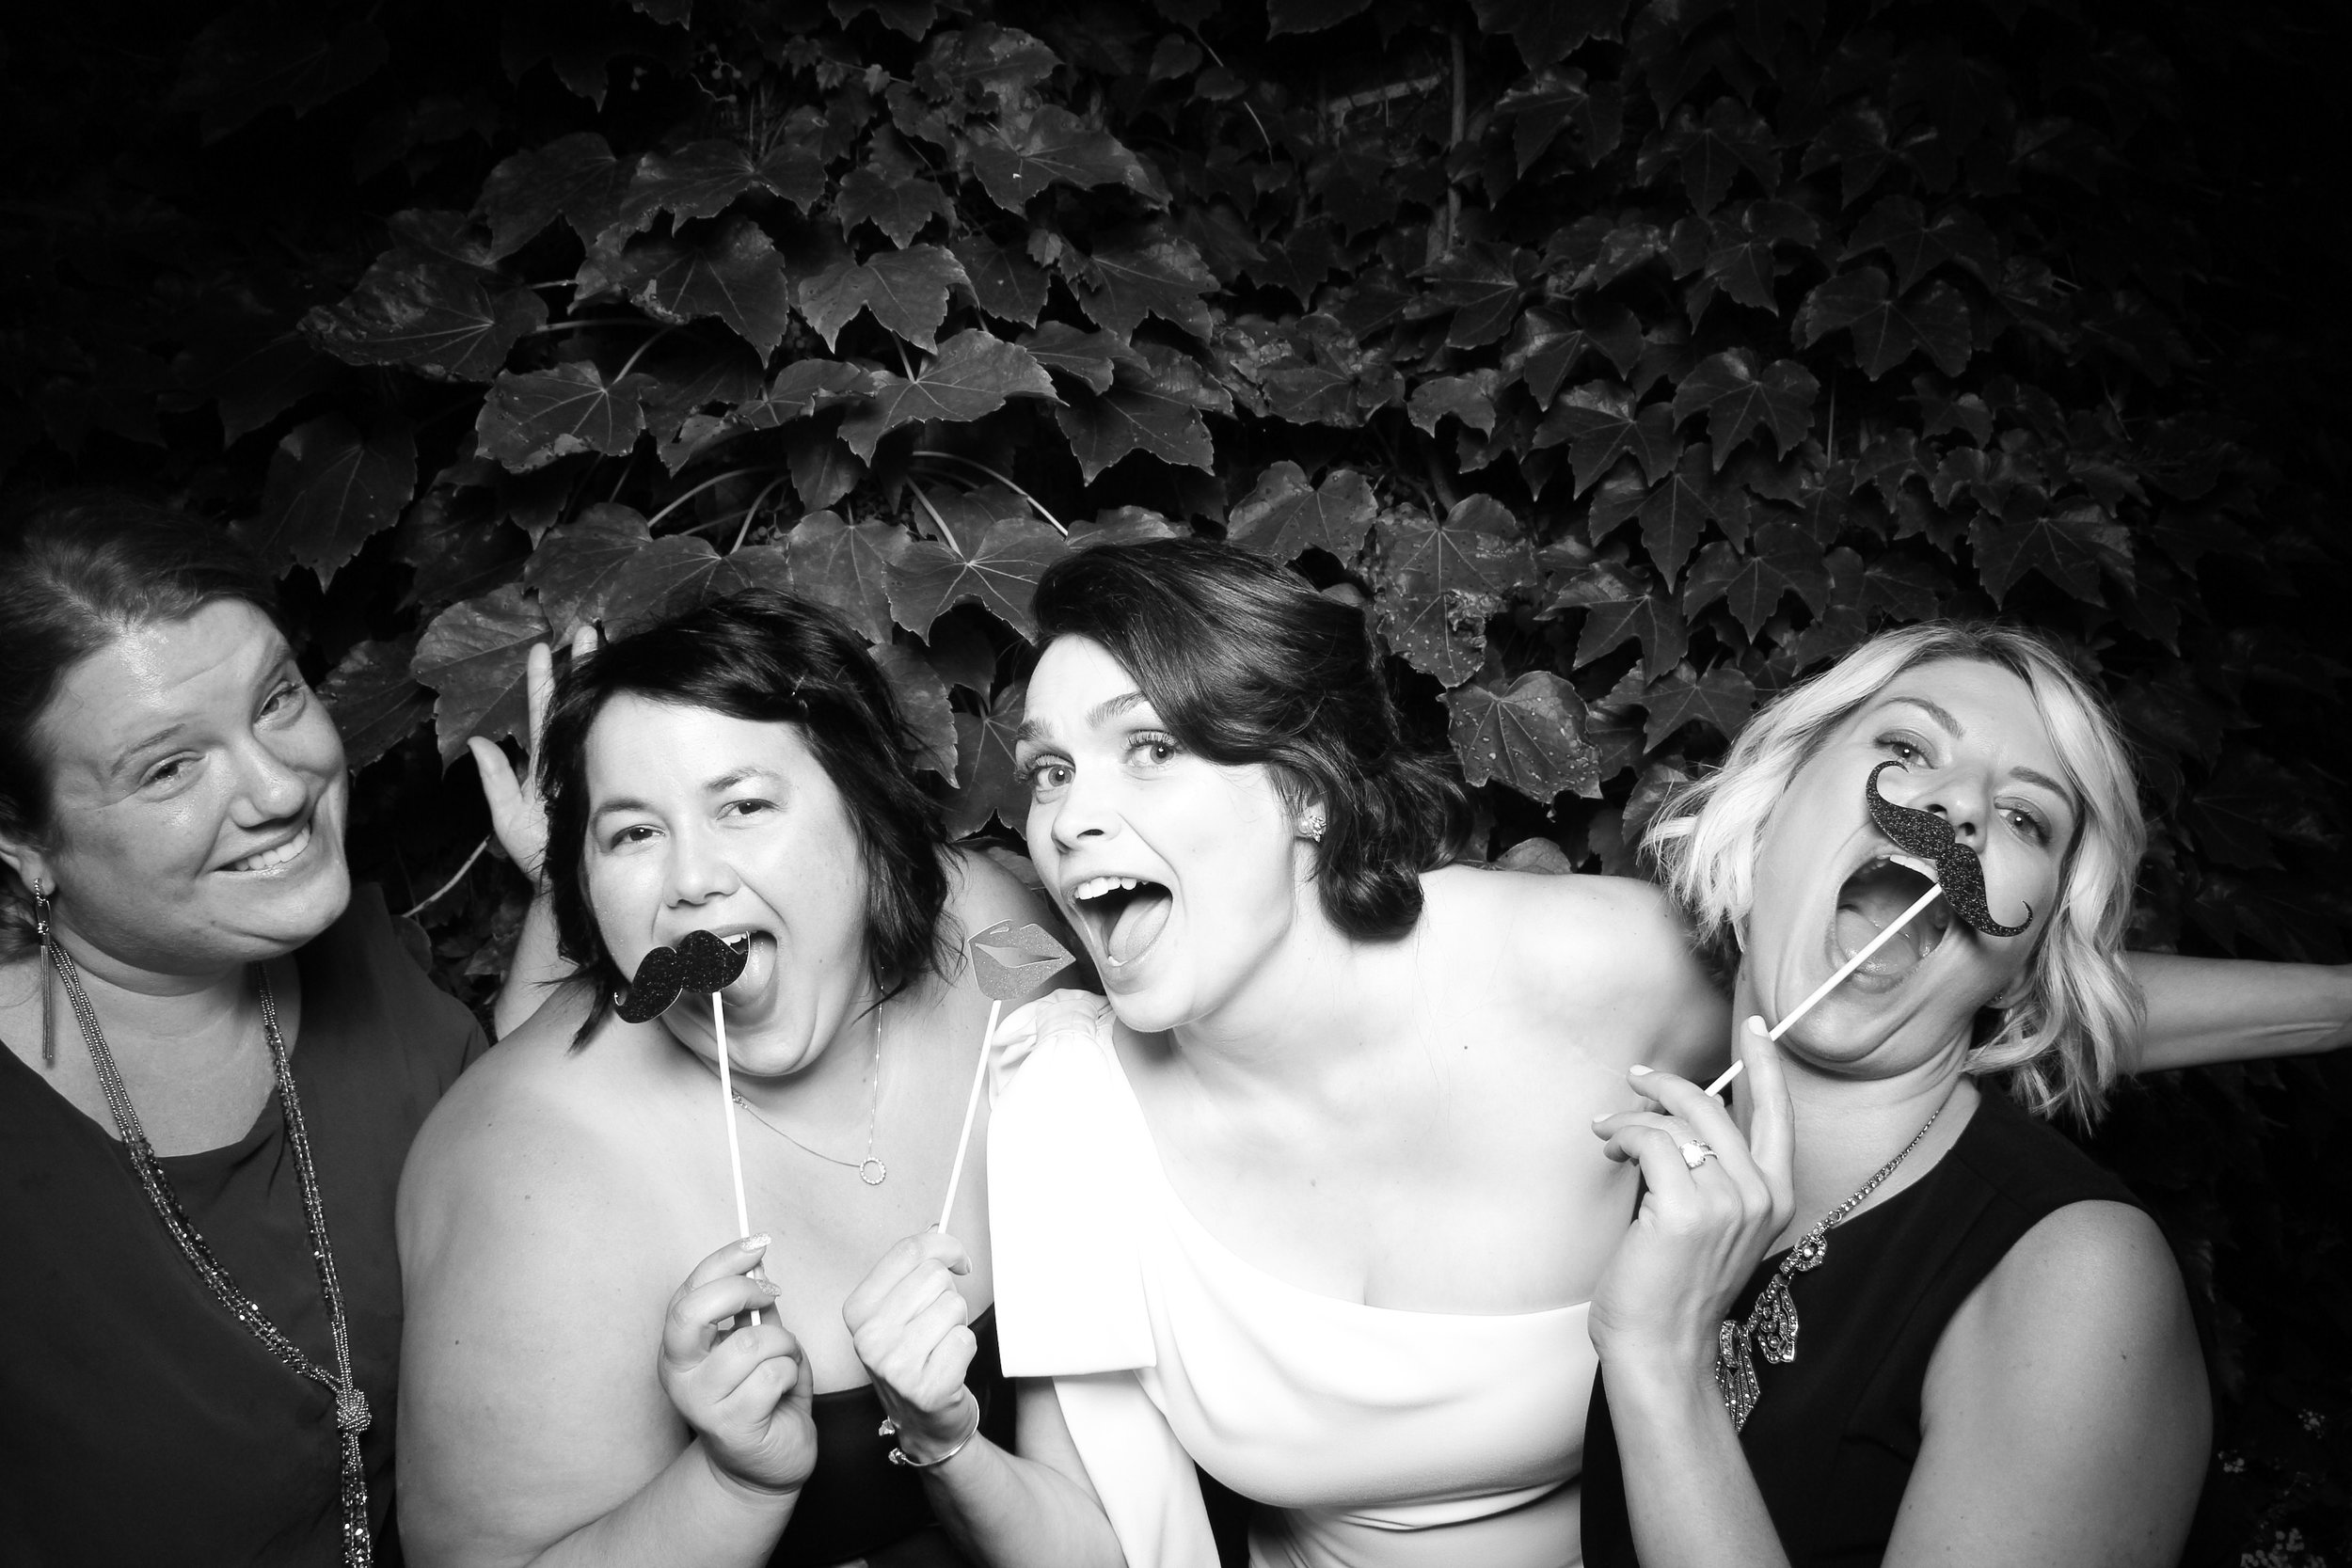 Chicago_Vintage_Wedding_Photobooth_Firehouse_23.jpg